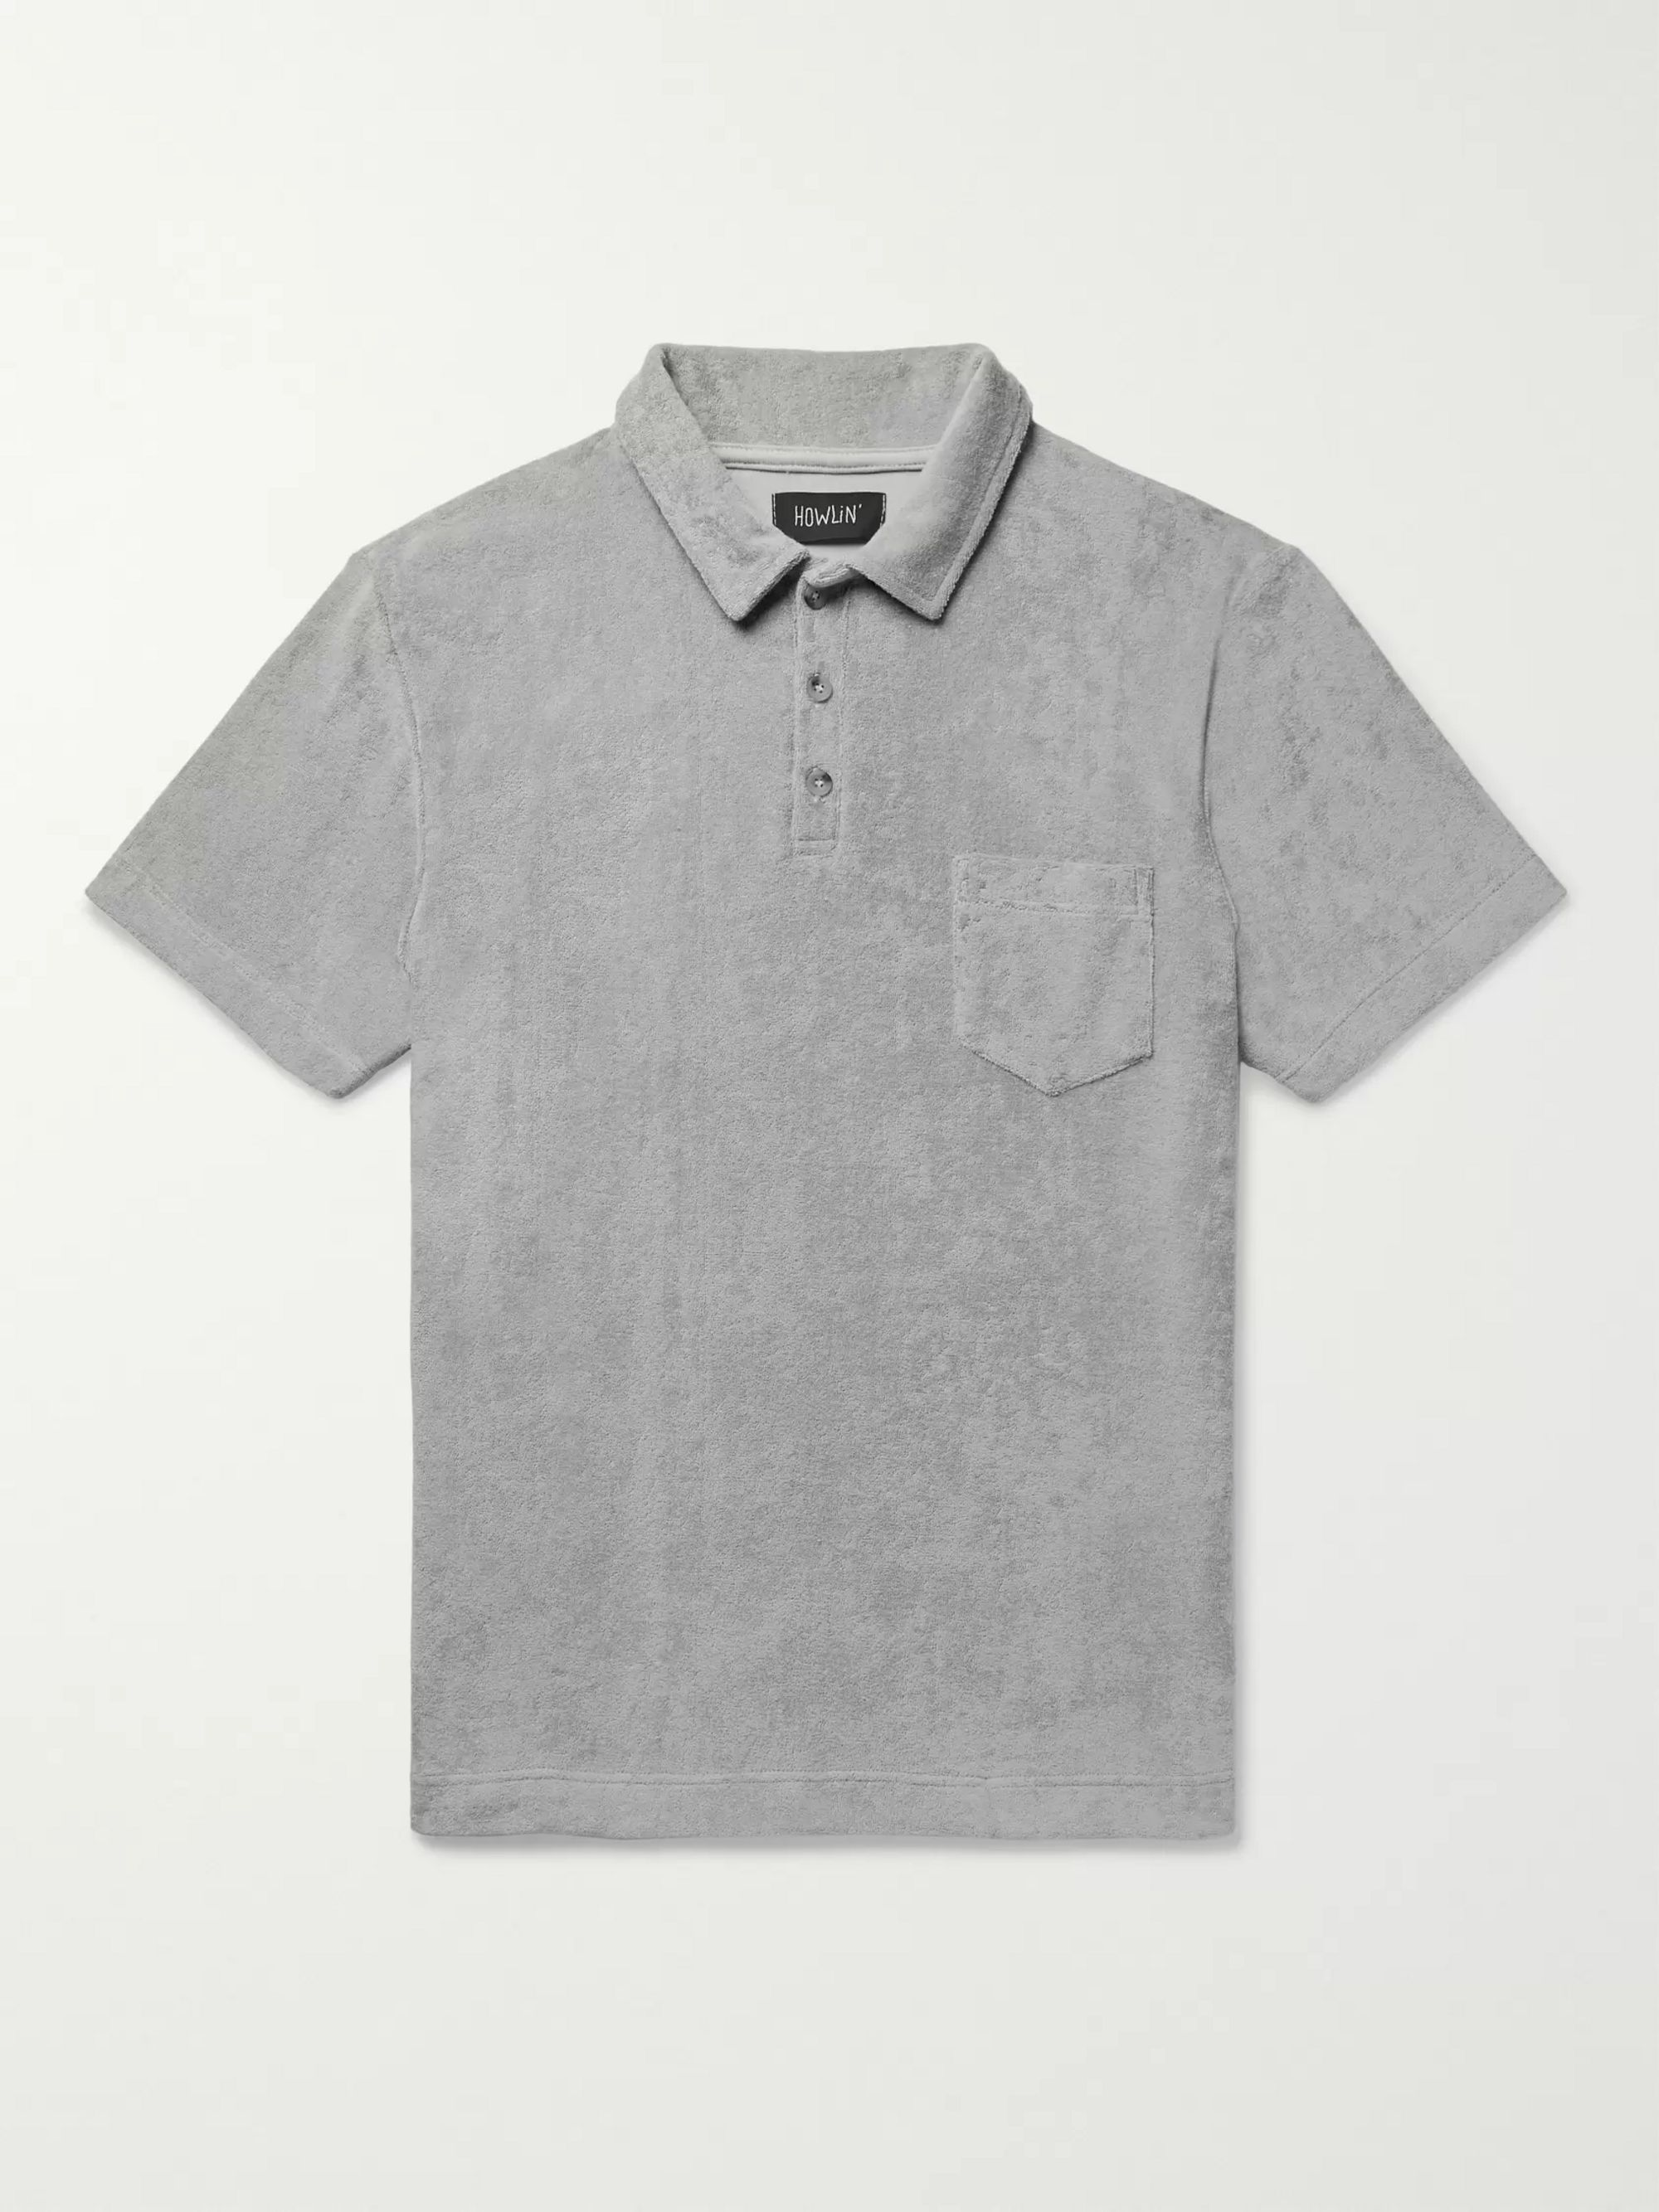 Howlin' Mr Fantasy Cotton-Blend Terry Polo Shirt